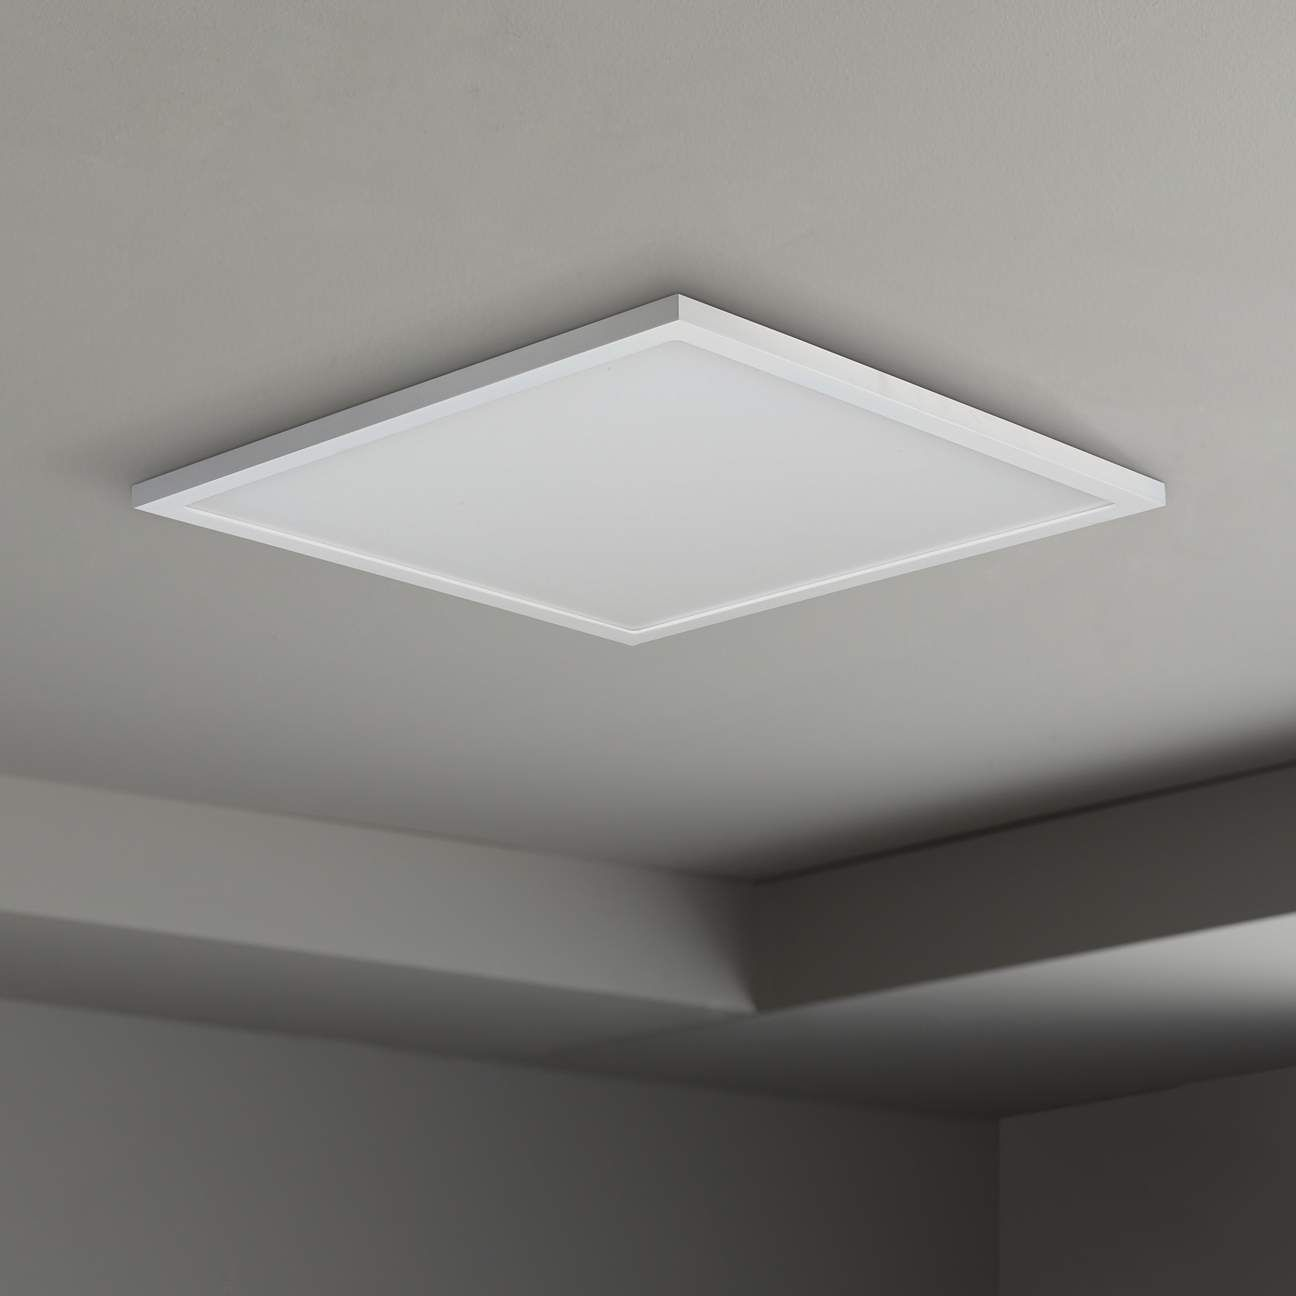 Maxim Wafer 15 Wide White 3000k Led Square Ceiling Light 53v45 Lamps Plus In 2021 Ceiling Lights Square Ceiling Lights Lamps Plus